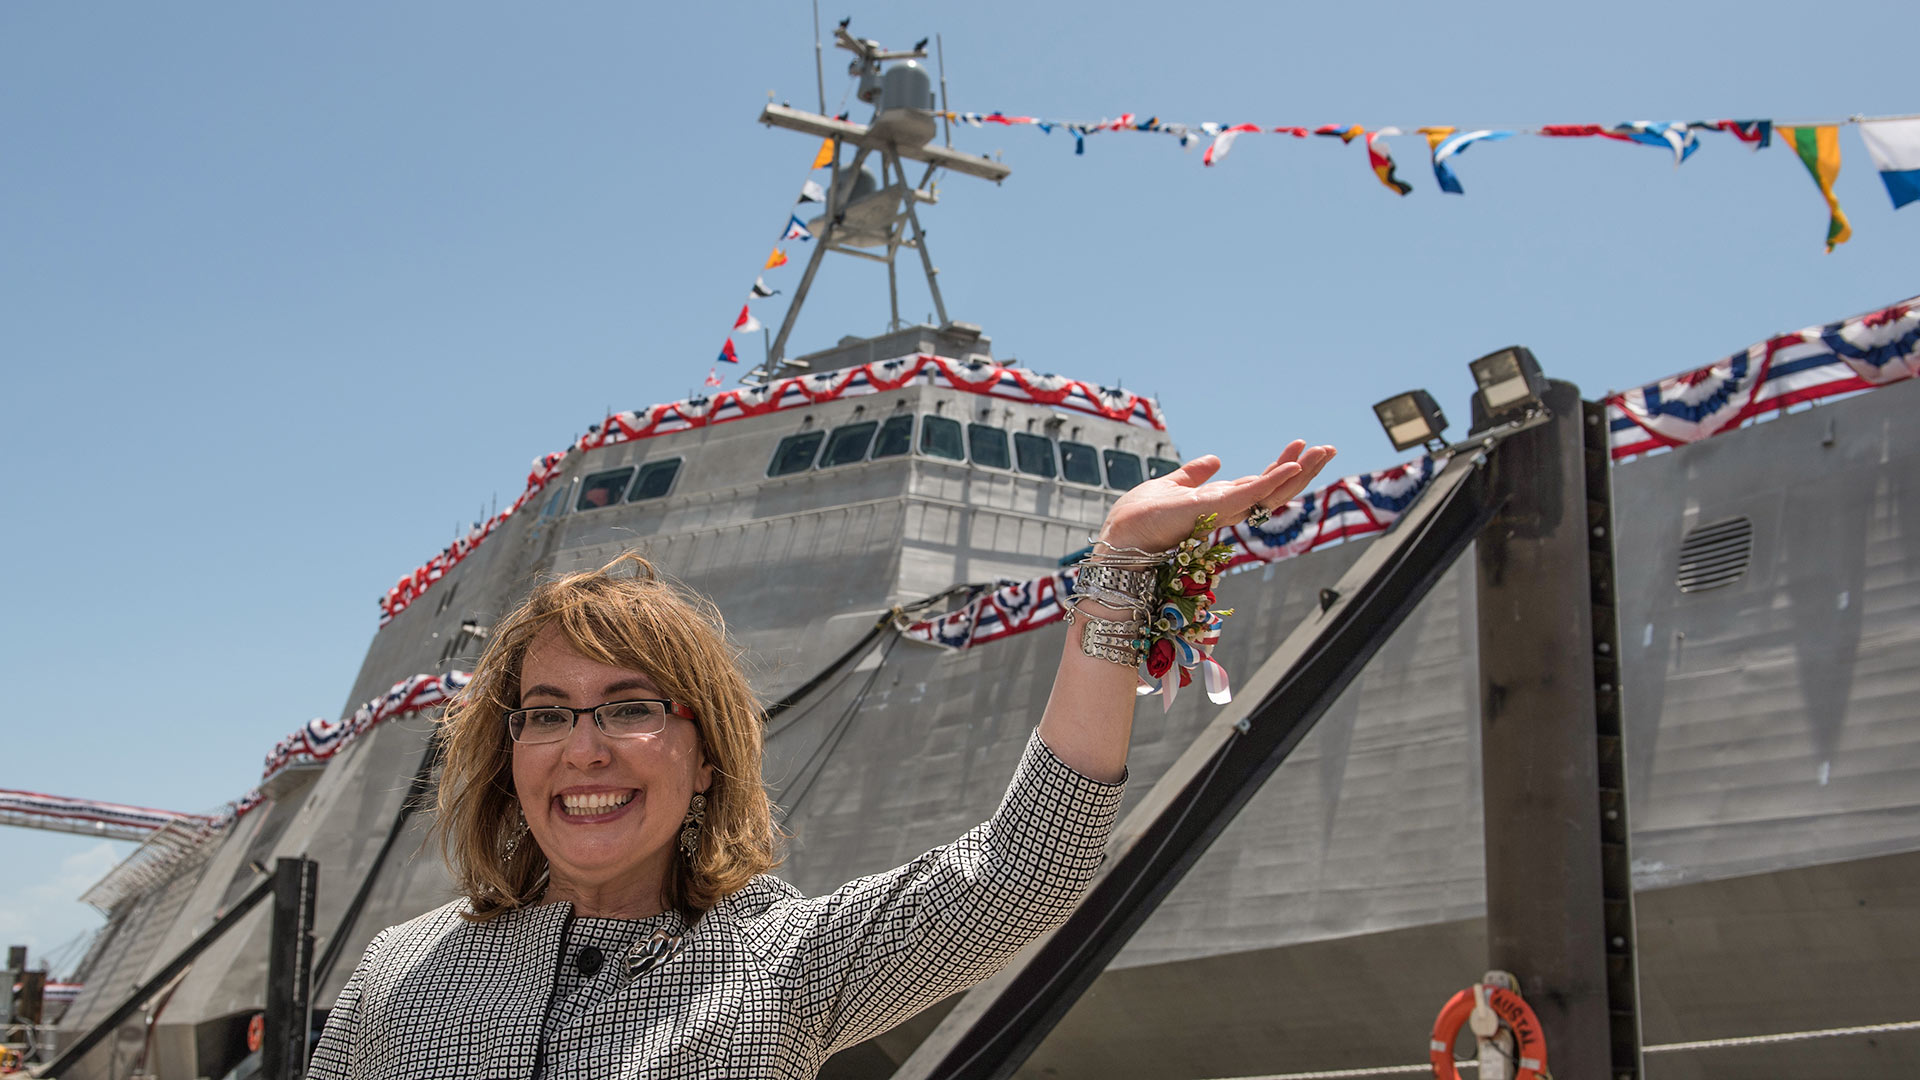 "Former U.S. Rep. Gabrielle ""Gabby"" Giffords waves to a crowd in front of the littoral combat ship, USS Gabrielle Giffords (LCS 10), named for her. Giffords was on the stage as Dr. Jill Biden christened the ship at Austal USA in Mobile, Ala. The 419-foot ship was built at the Austal shipyard and is the Navy's 10th littoral combat ship designed to operate in shallow waters near the coast. It is 16th U.S. naval ship to be named for a woman and only the 13th since 1850 to be named for a living person. June 13, 2015"